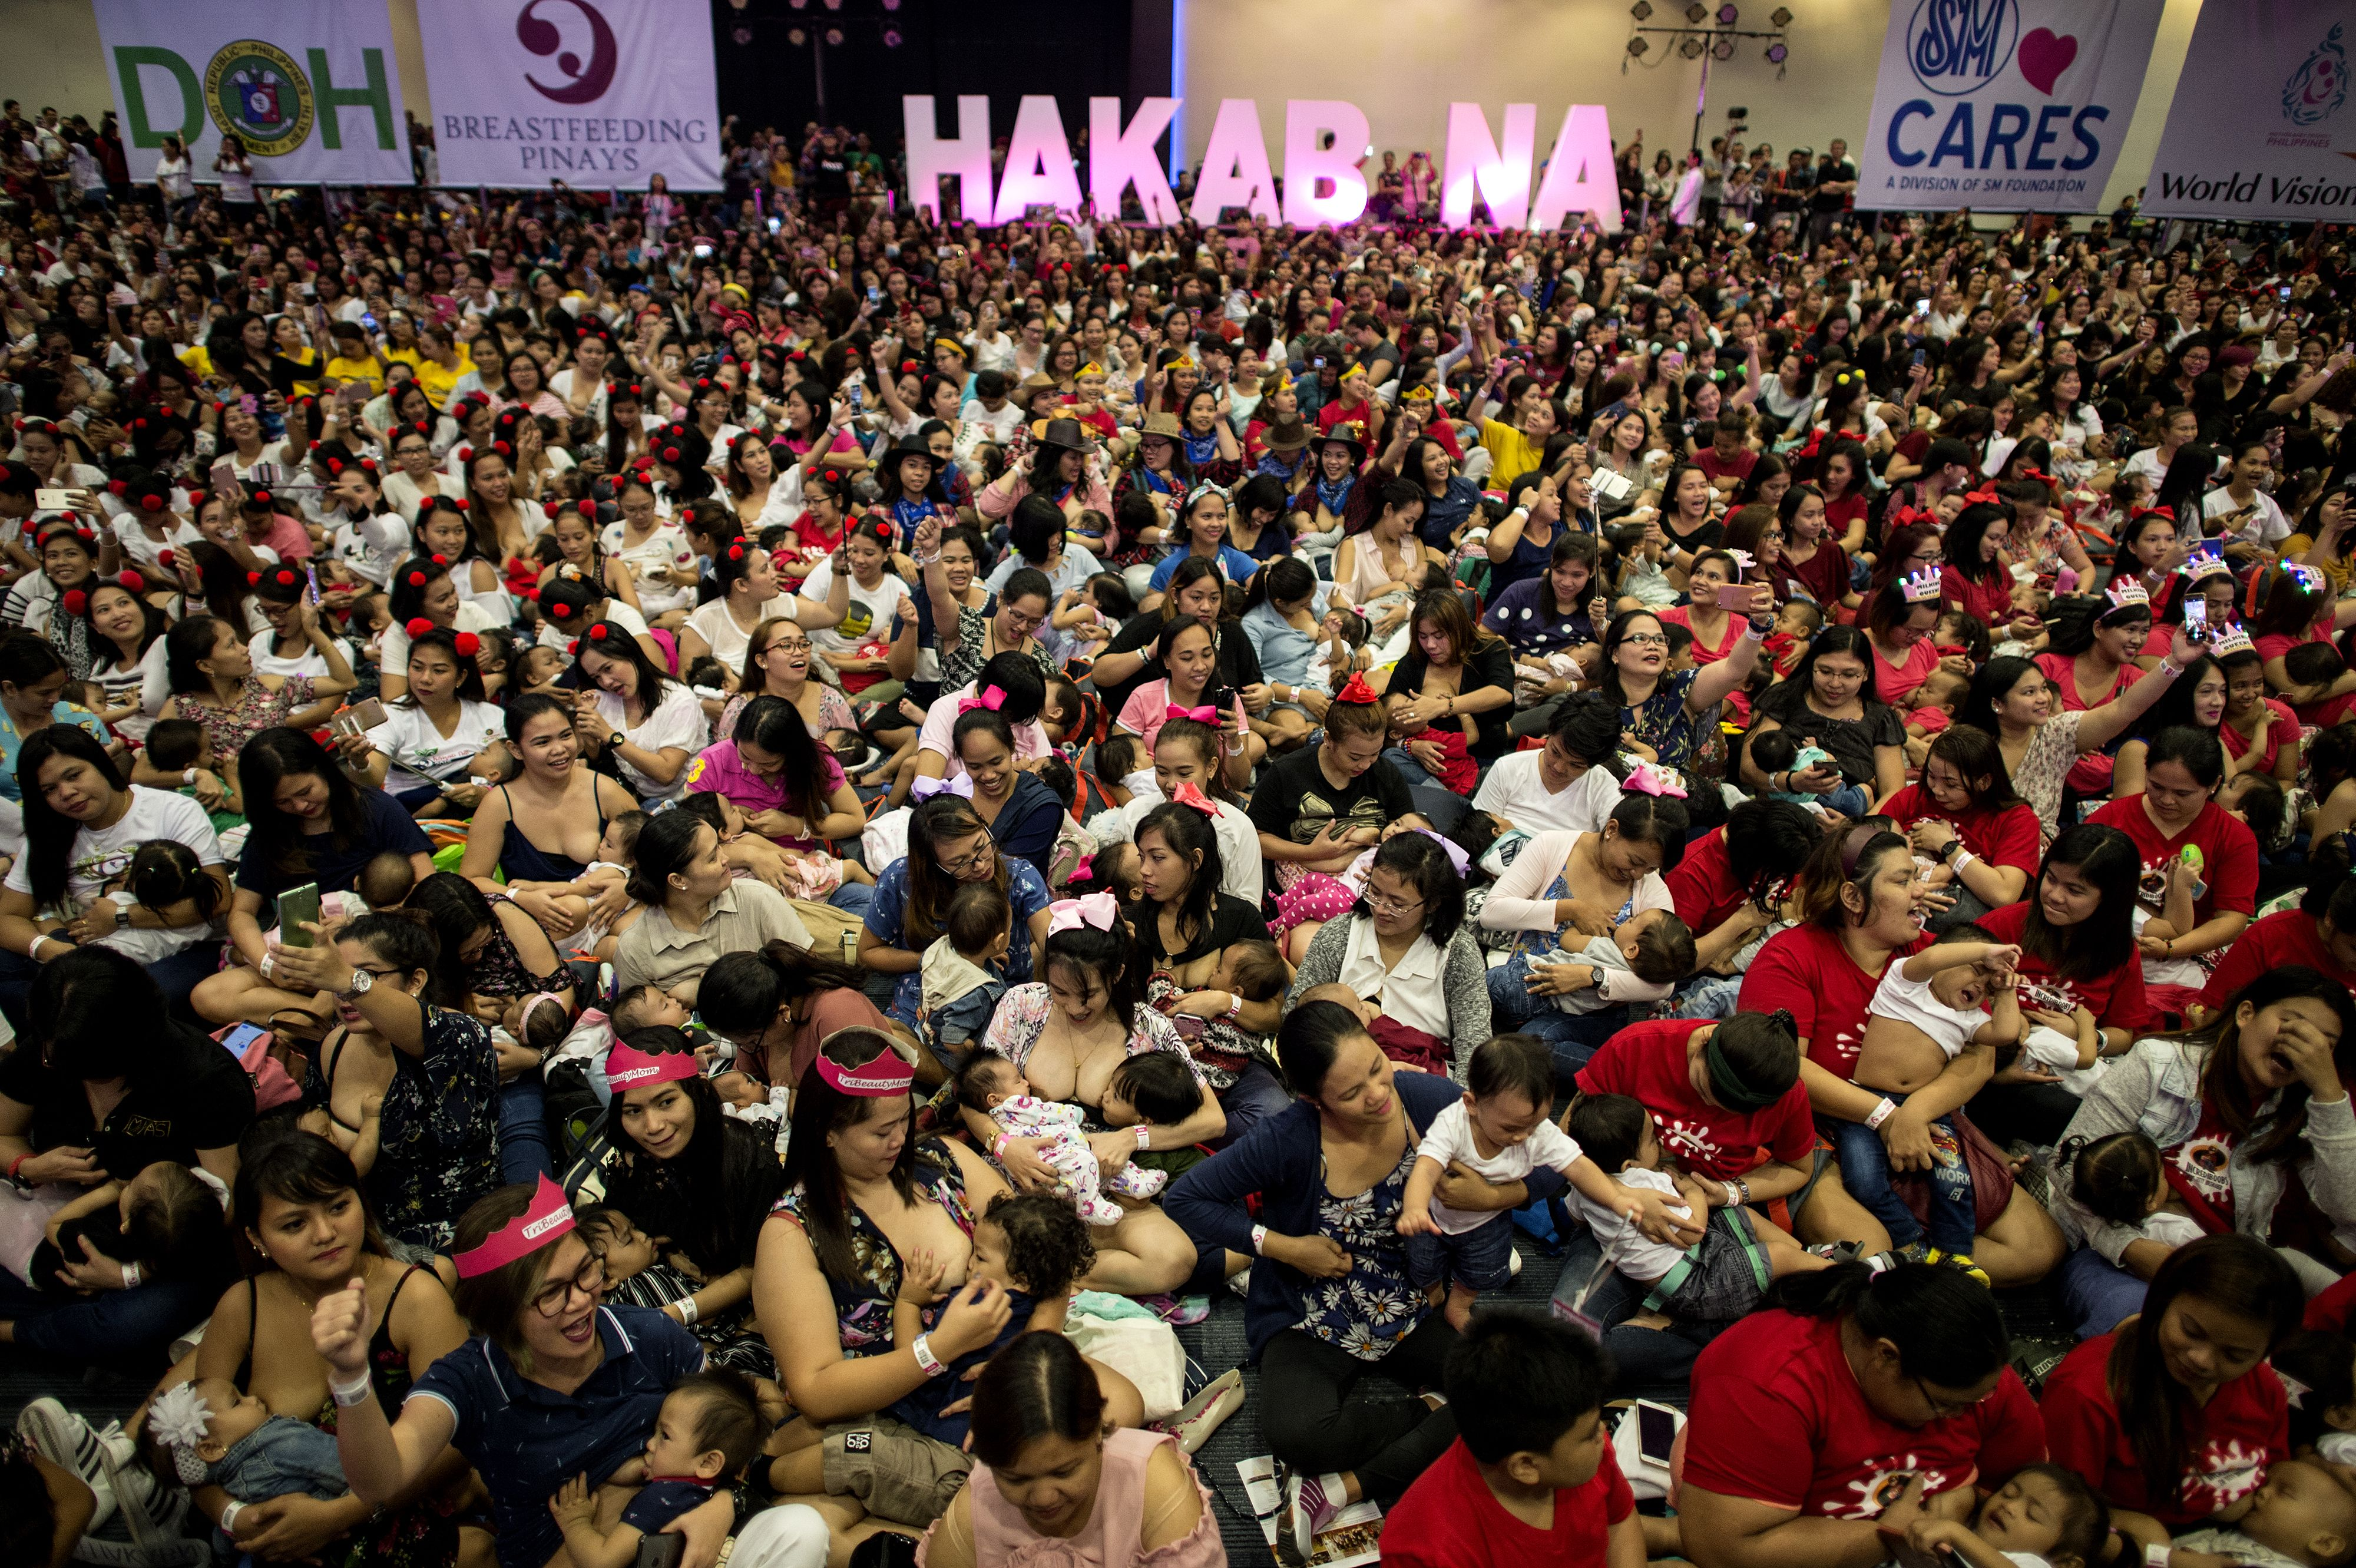 Mothers participate in a breastfeeding event in Manila on Aug. 5, 2018.